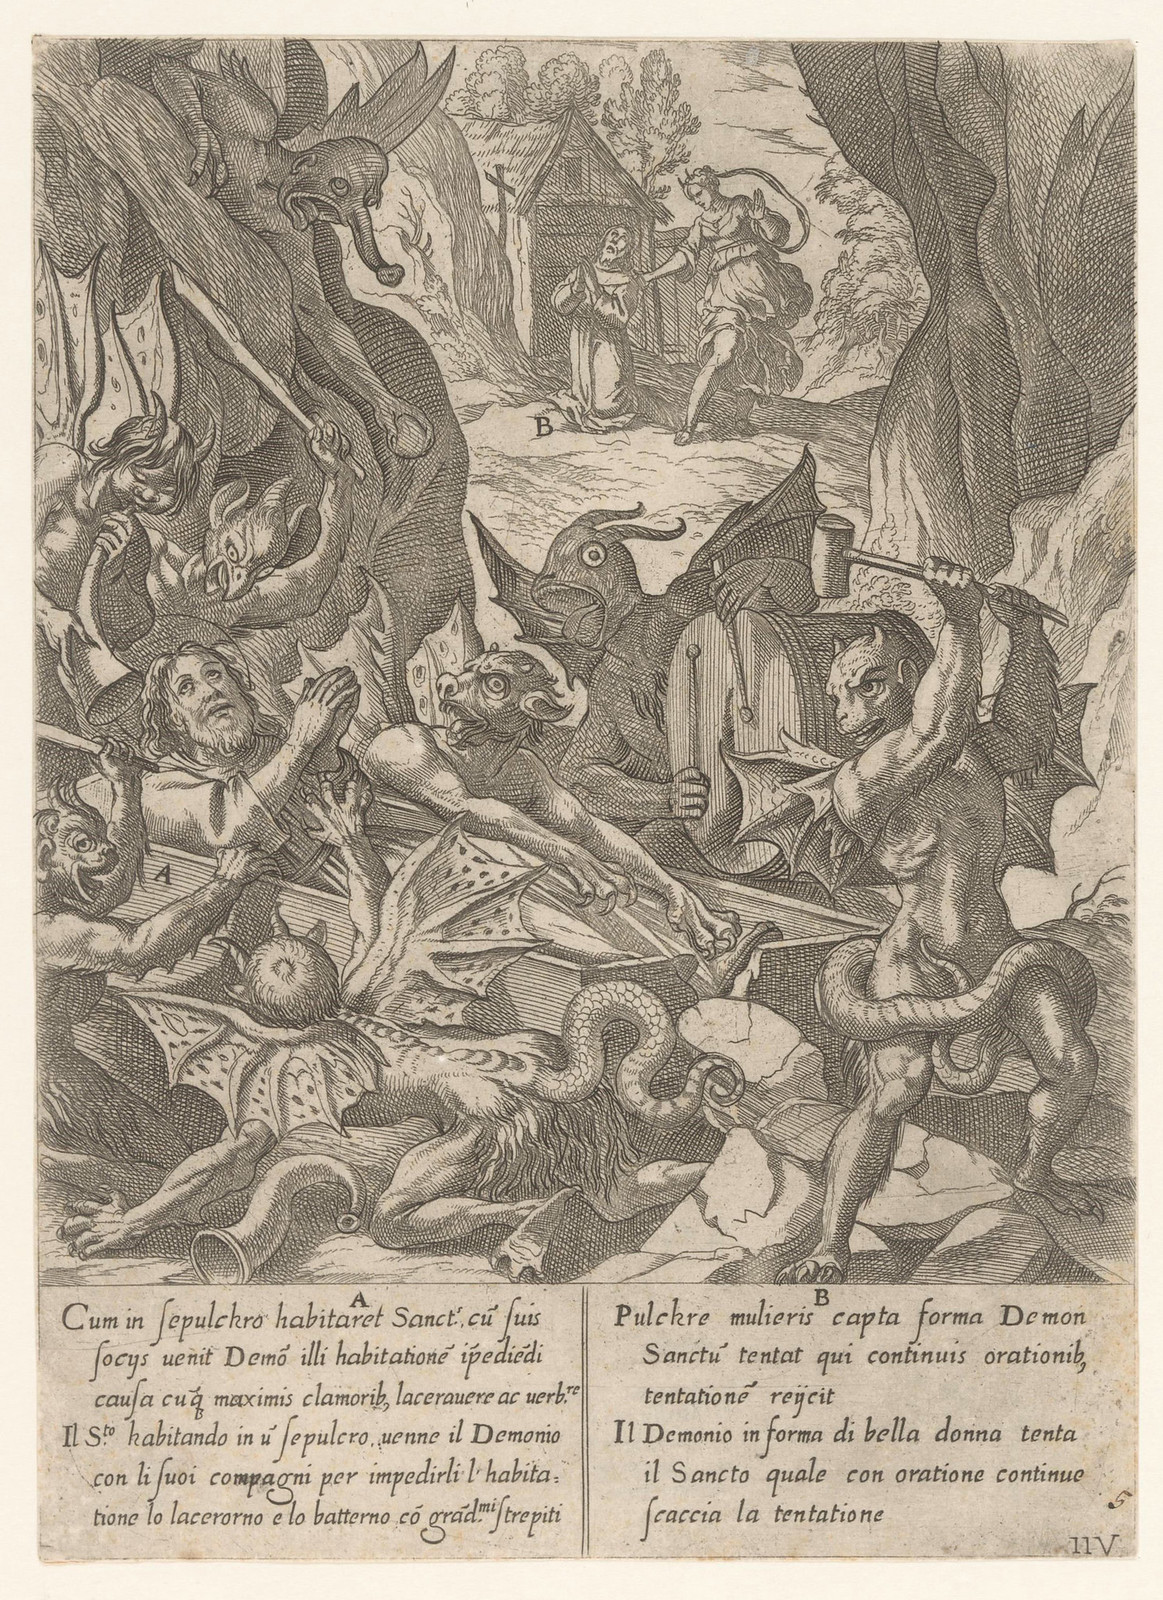 Antonio Tempesta, after Niccolo Circignani and Giovanni Battista Lombardelli - Saint Anthony With Demons - 05, 1598